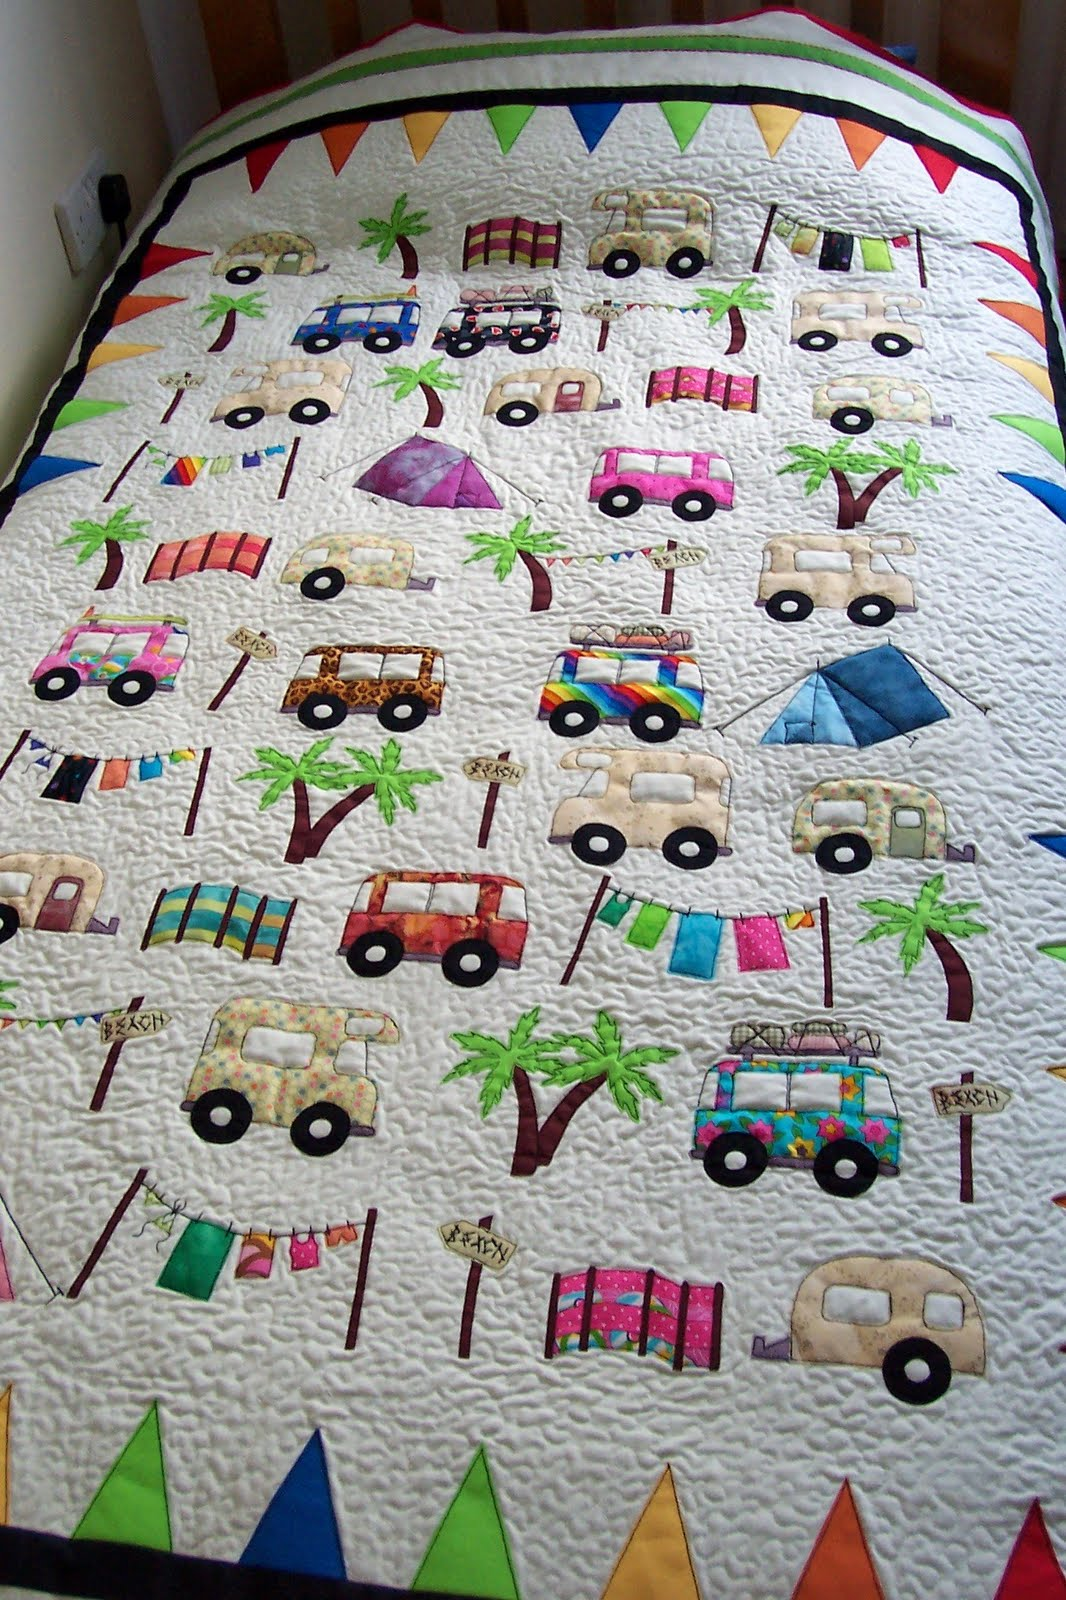 House Of Spoon Camping Quilt Babyroom 1